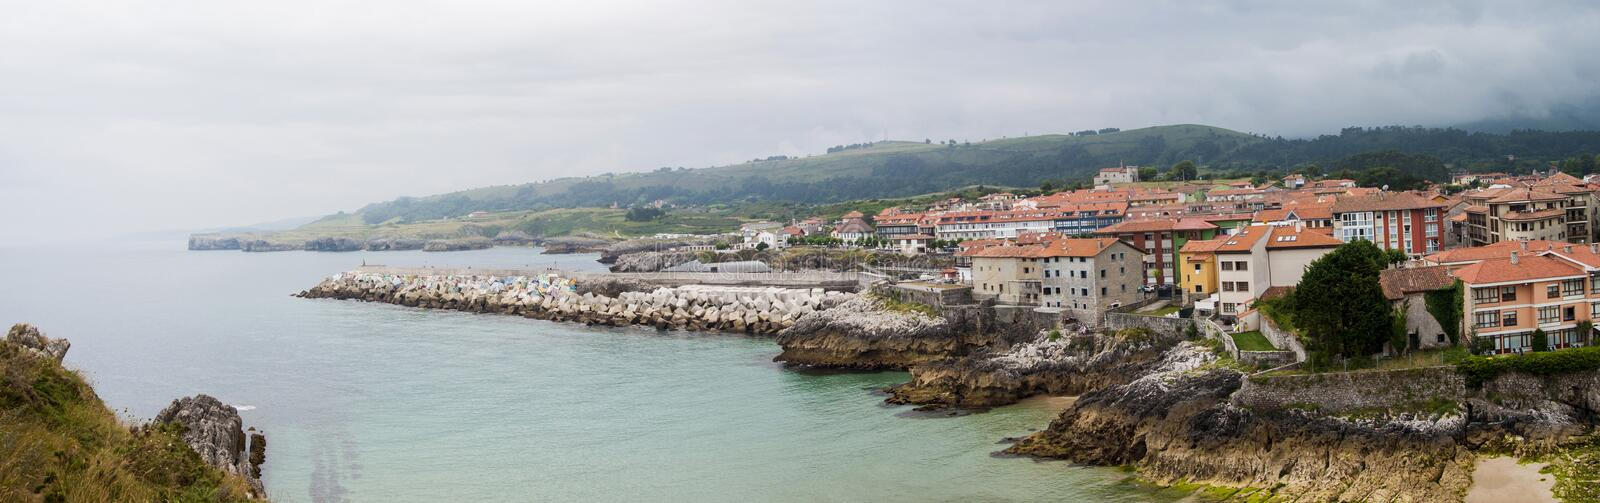 Panoramic view of Llanes, Spain stock photography